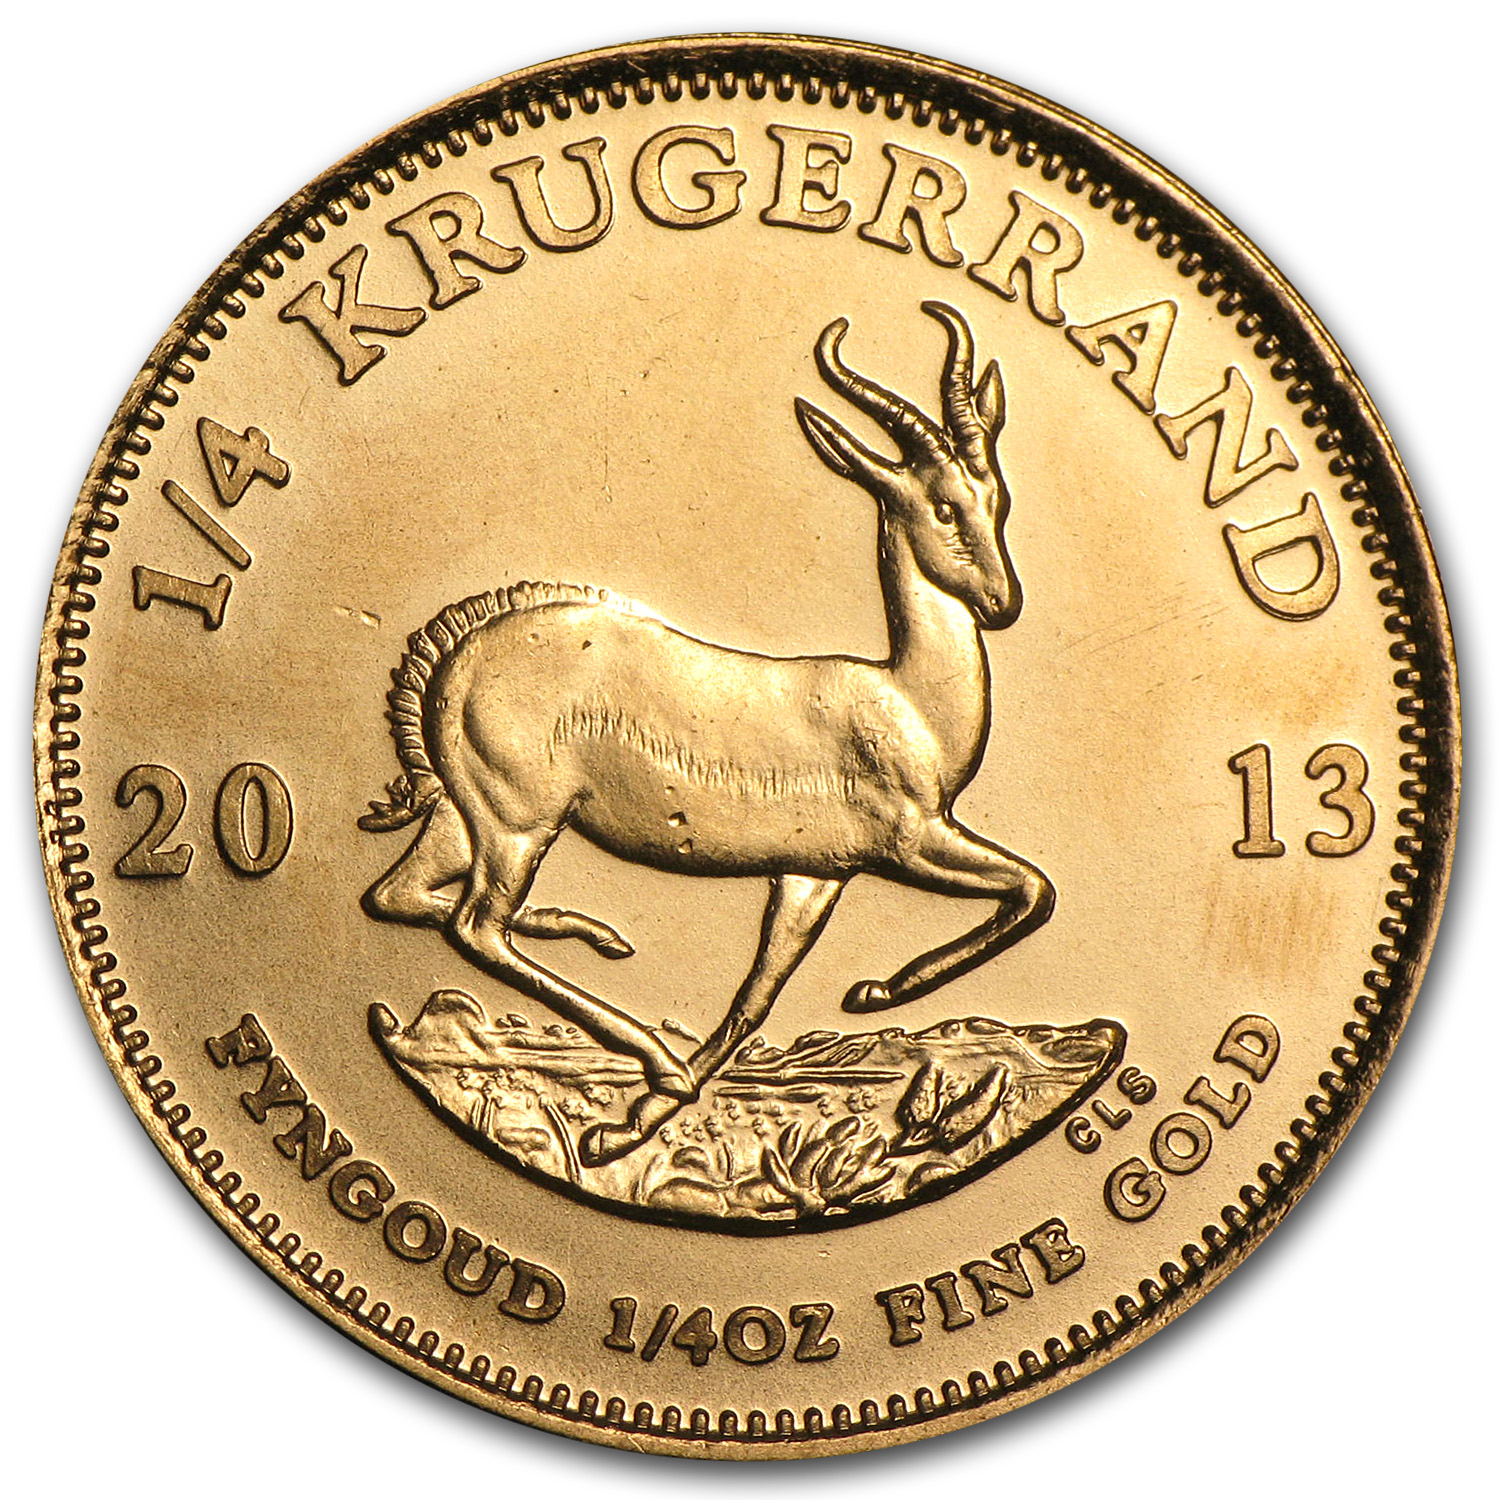 2013 South Africa 1/4 oz Gold Krugerrand